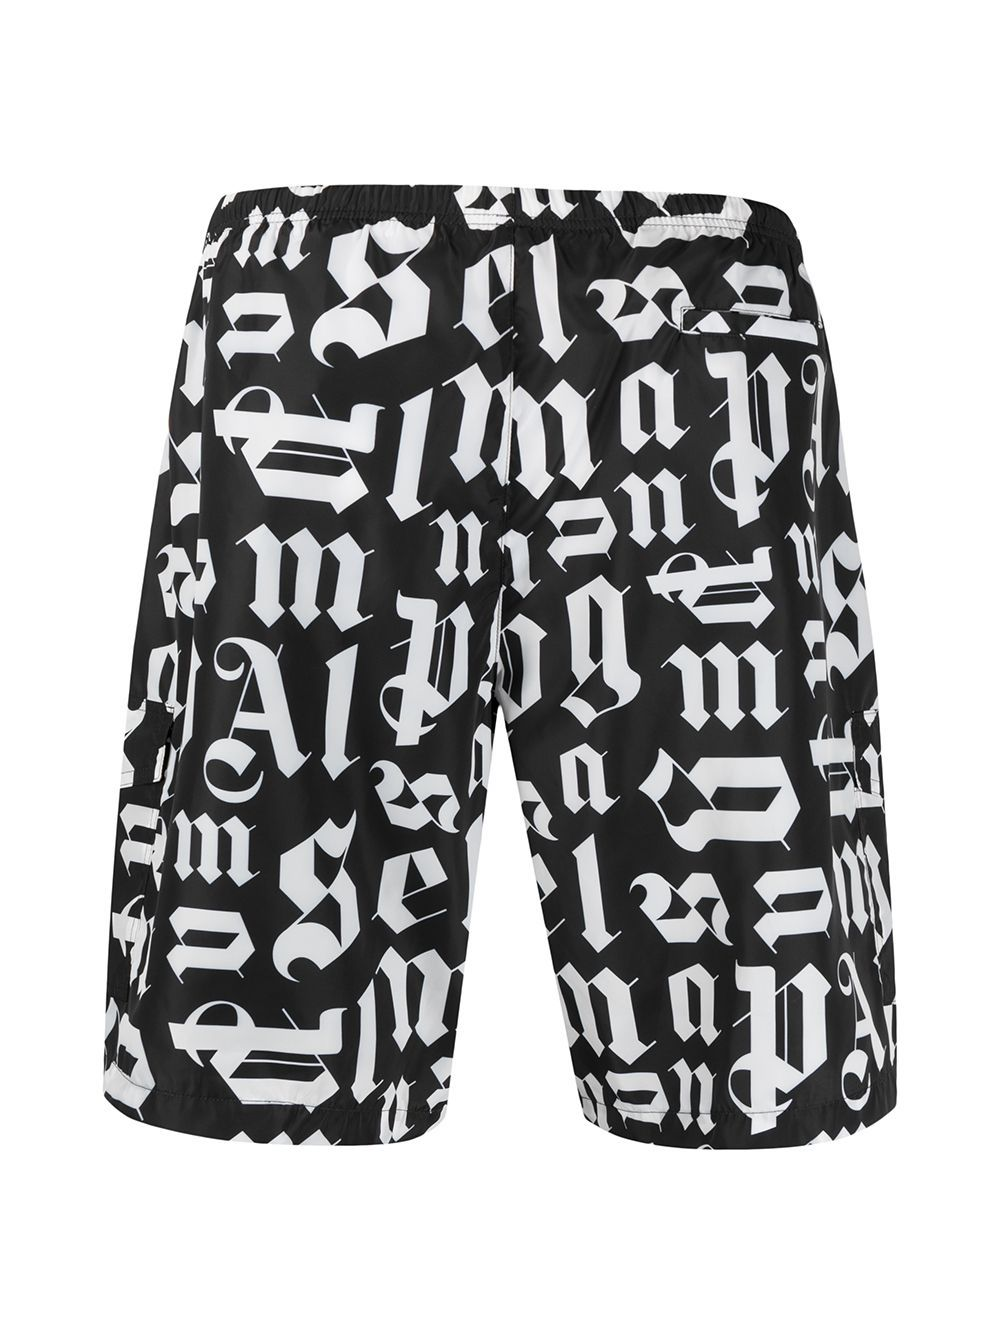 PALM ANGELS Broken Monogram Swim Shorts Black - Maison De Fashion